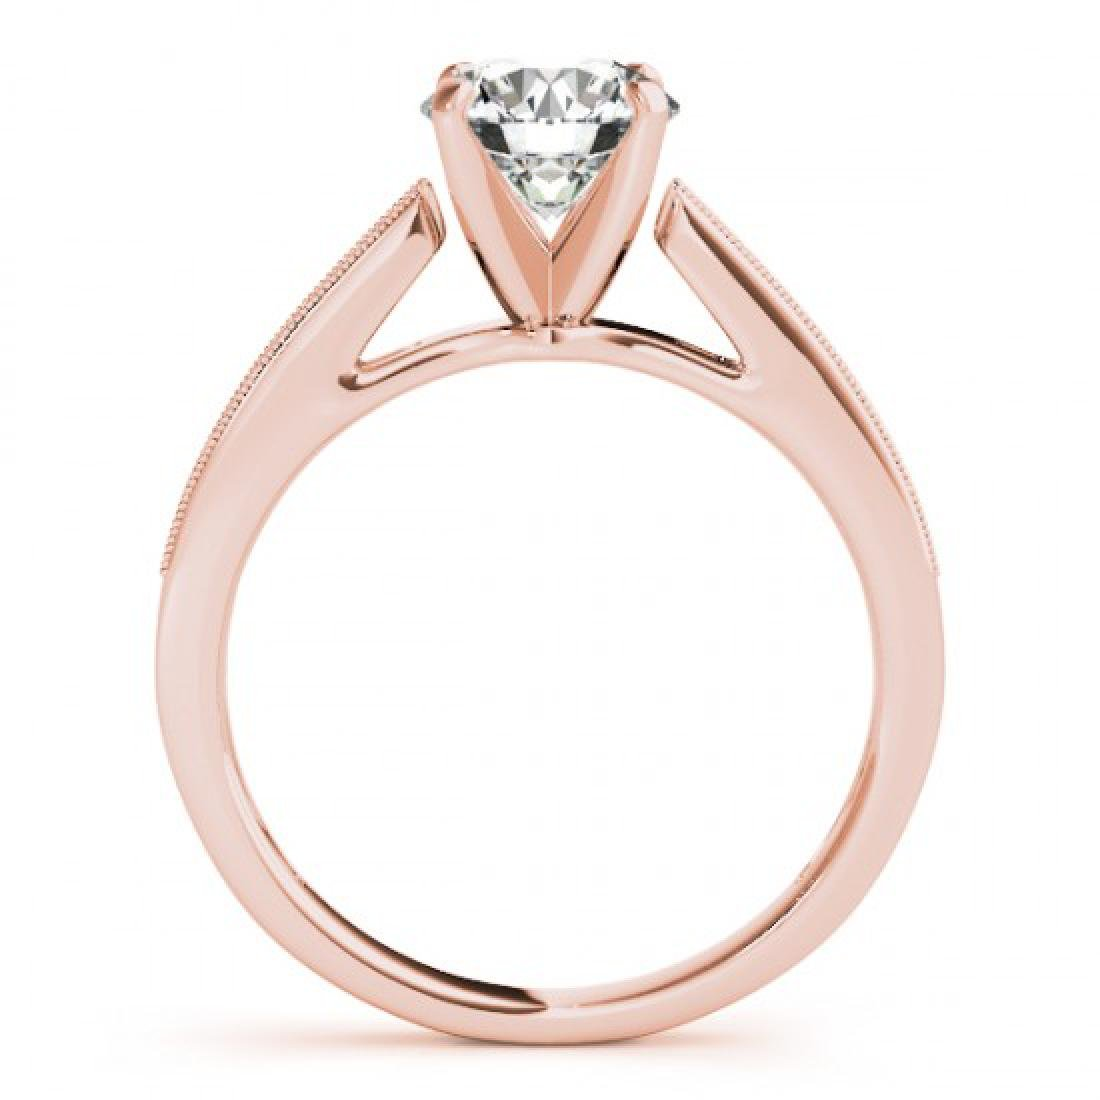 1.25 CTW Certified VS/SI Diamond Solitaire Ring 14K - 2